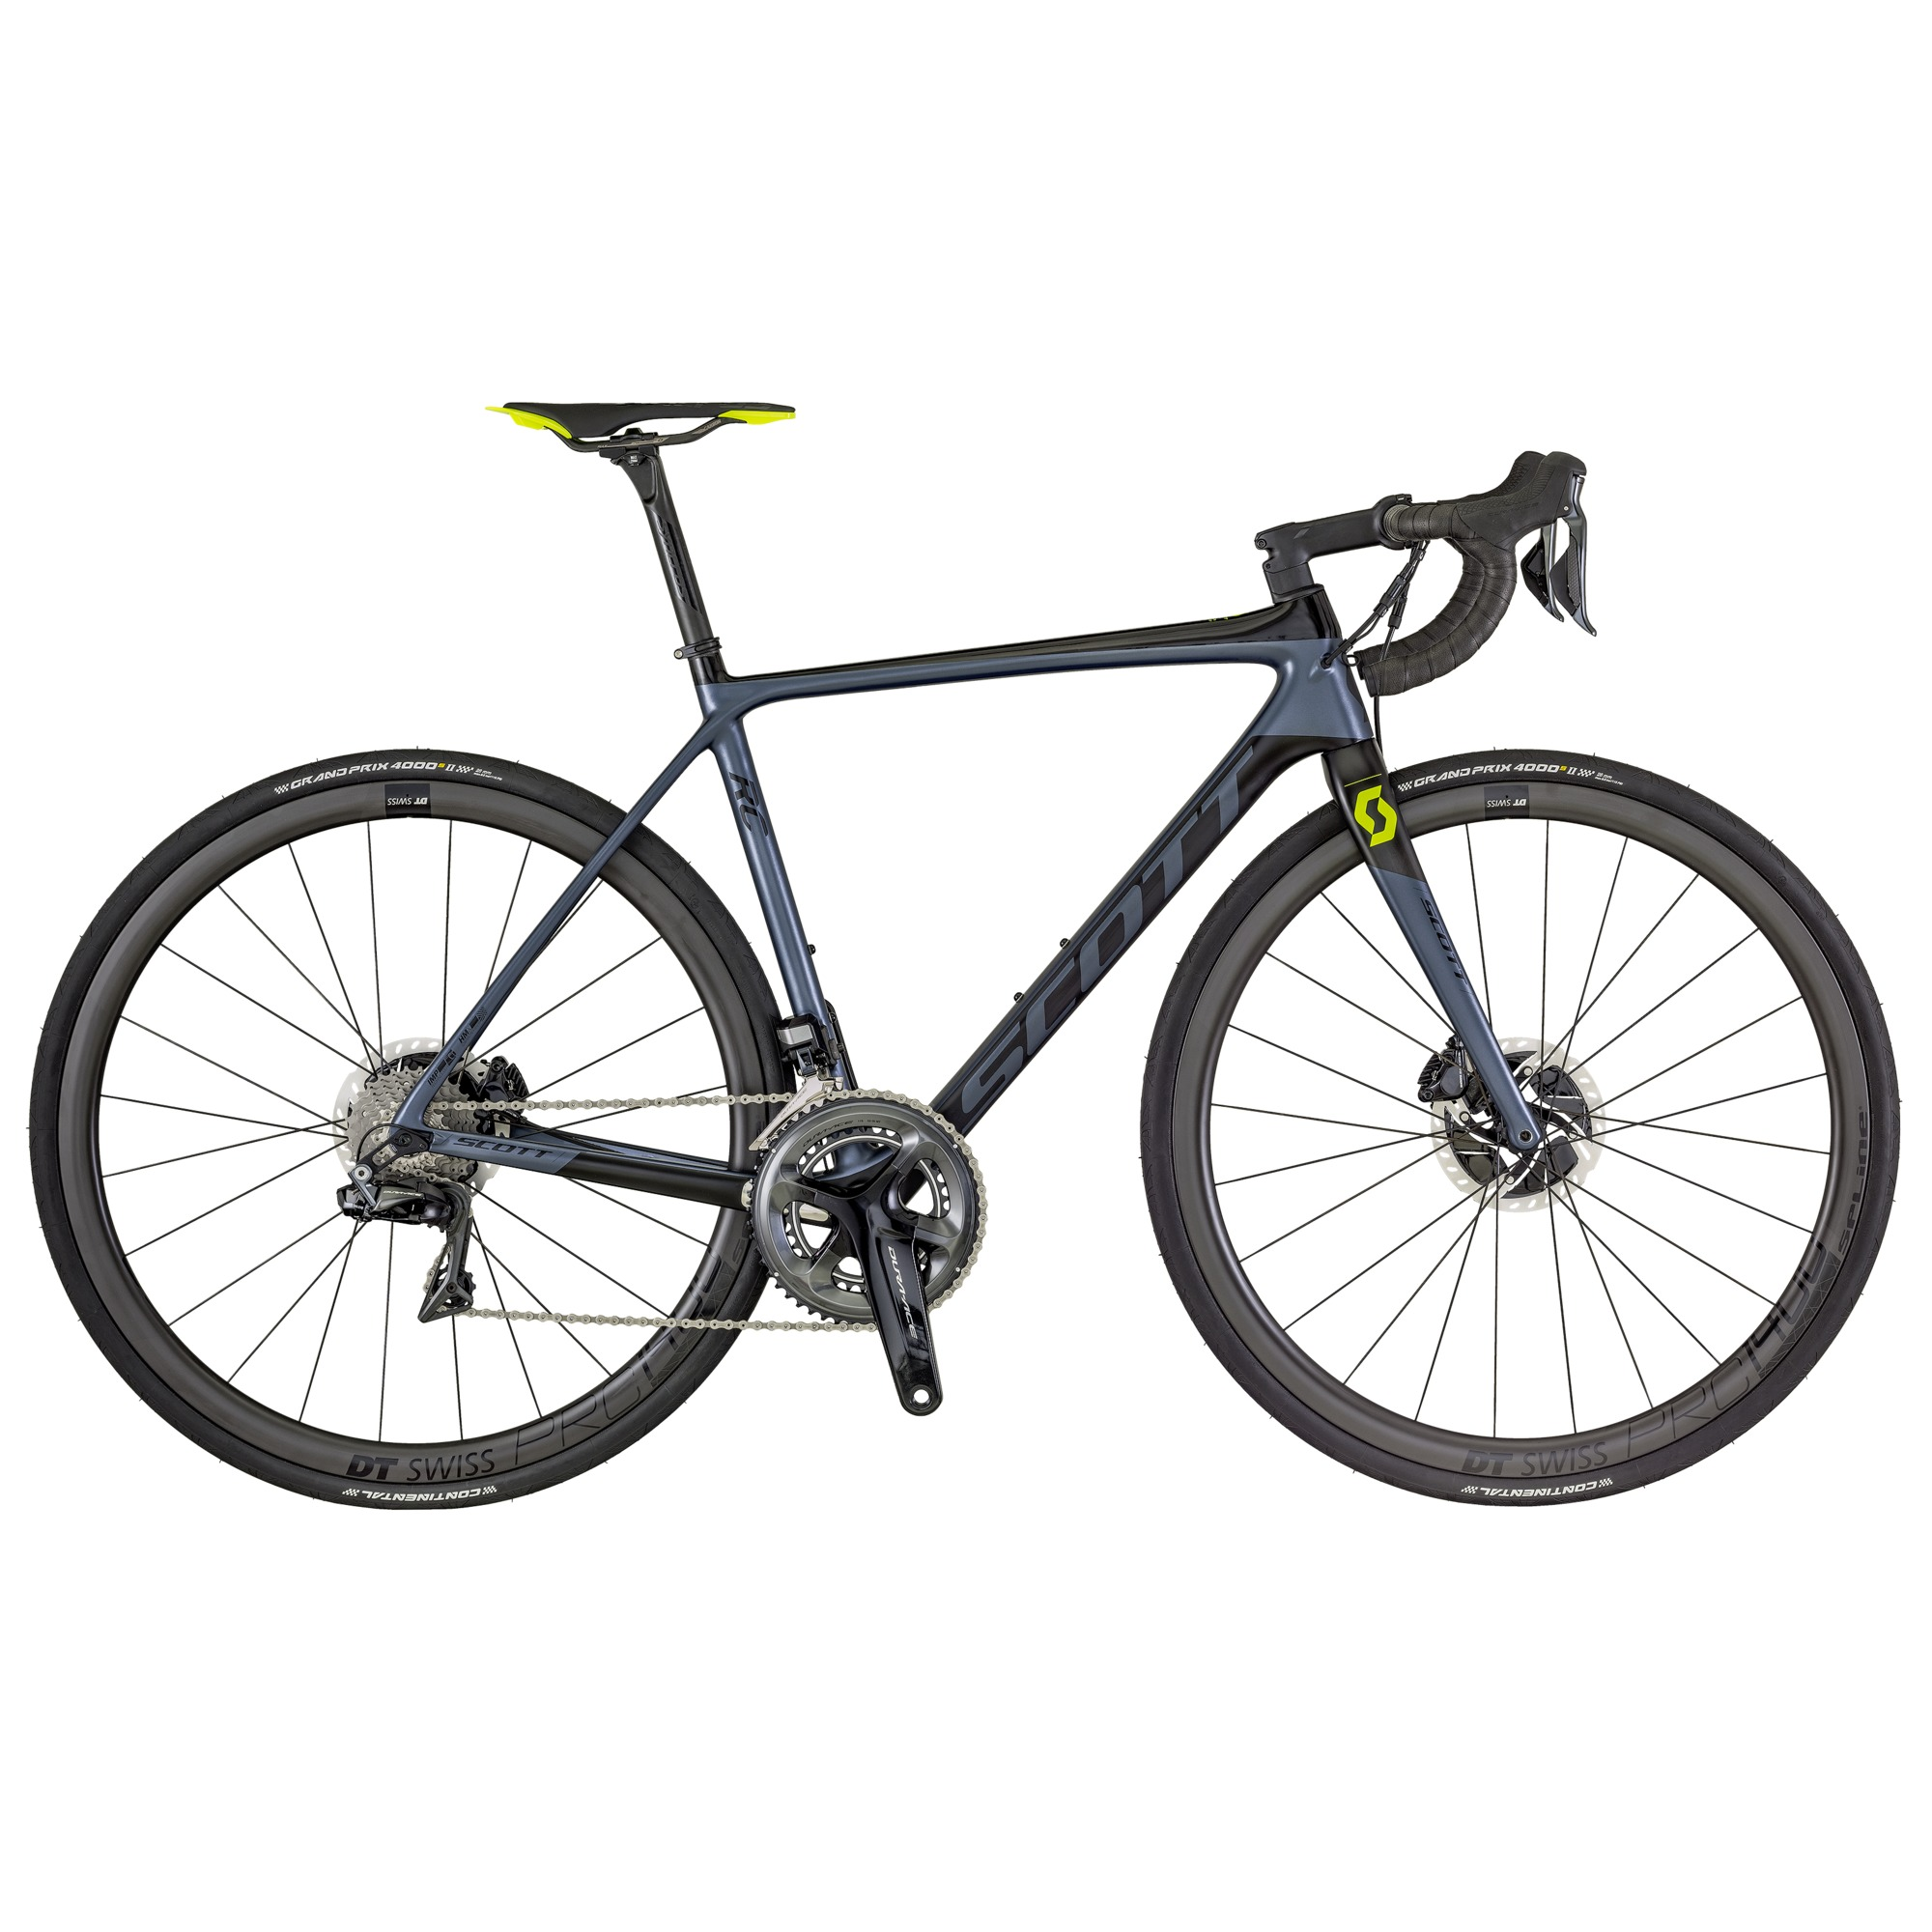 SCOTT Addict RC Premium Disc Bike L56 - Zweirad Homann